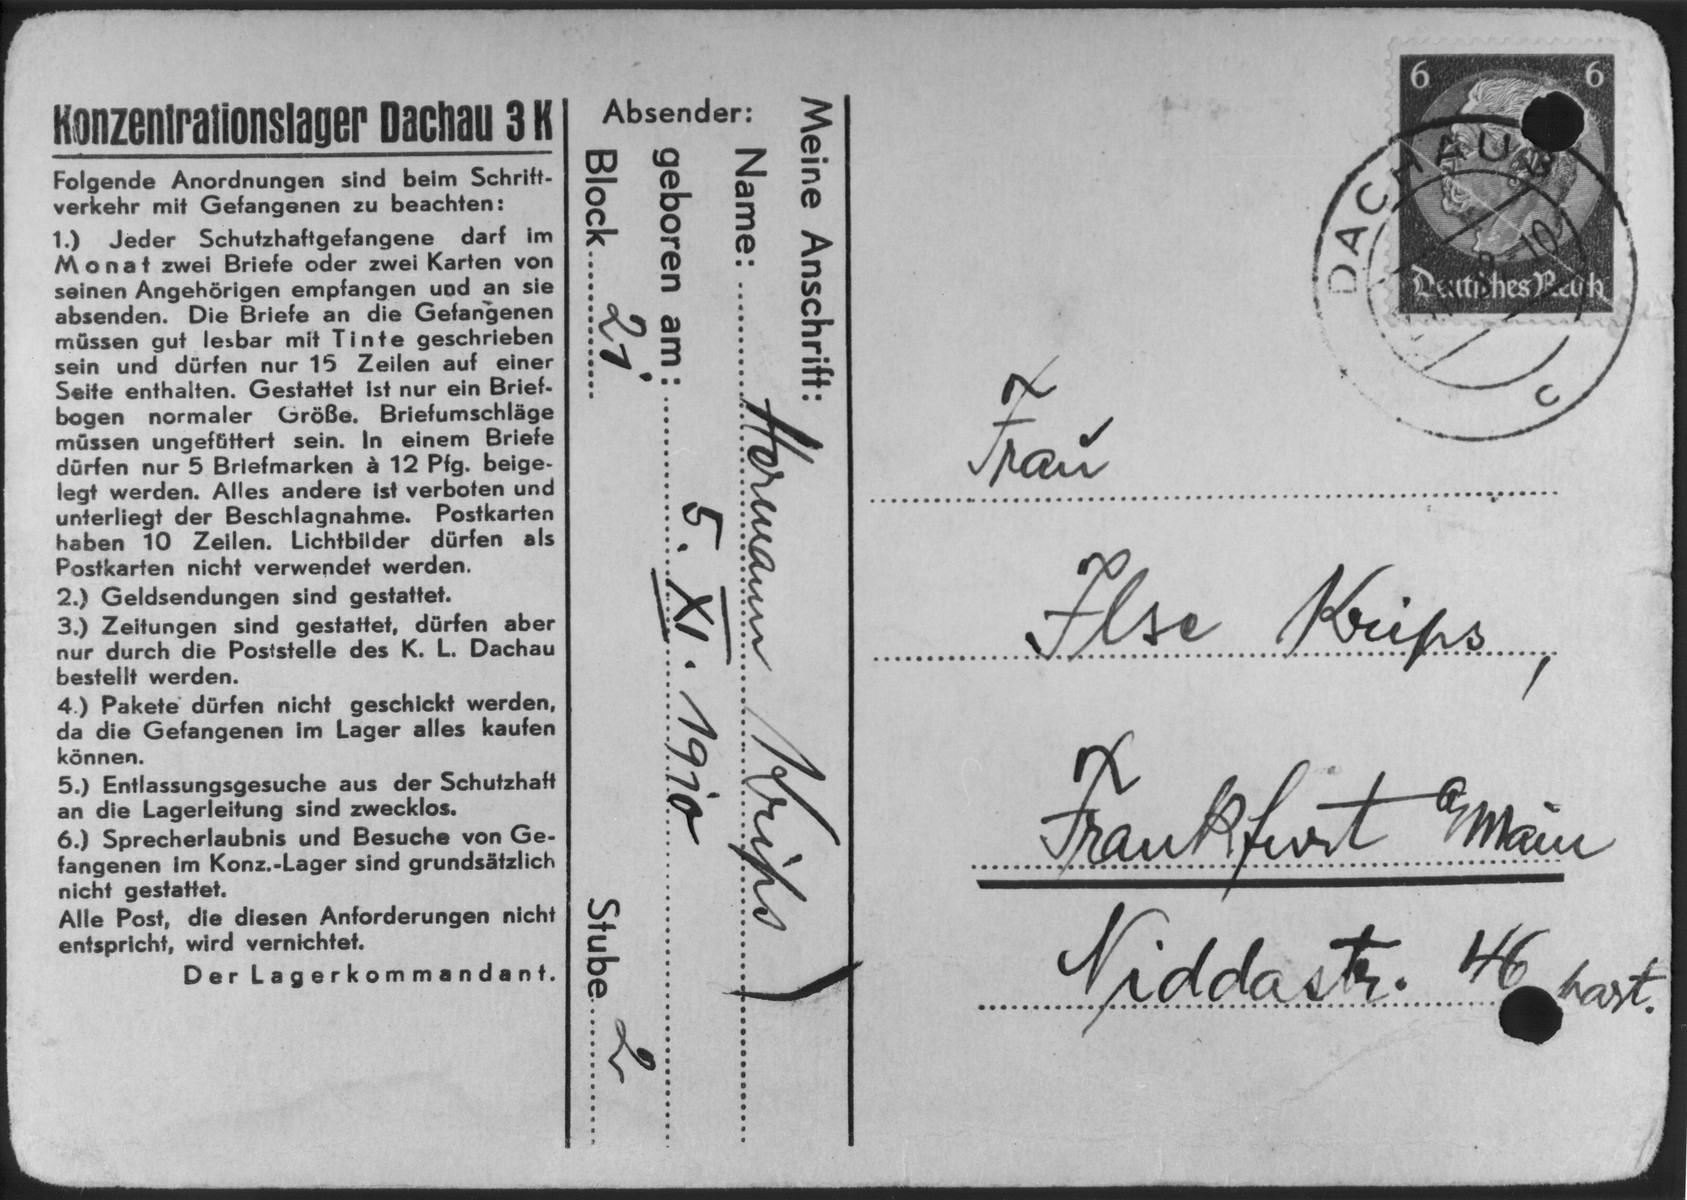 Postcard sent by Hermann Krips to his wife Ilse from the Dachau concentration camp where he was sent shortly after Kristallnacht.